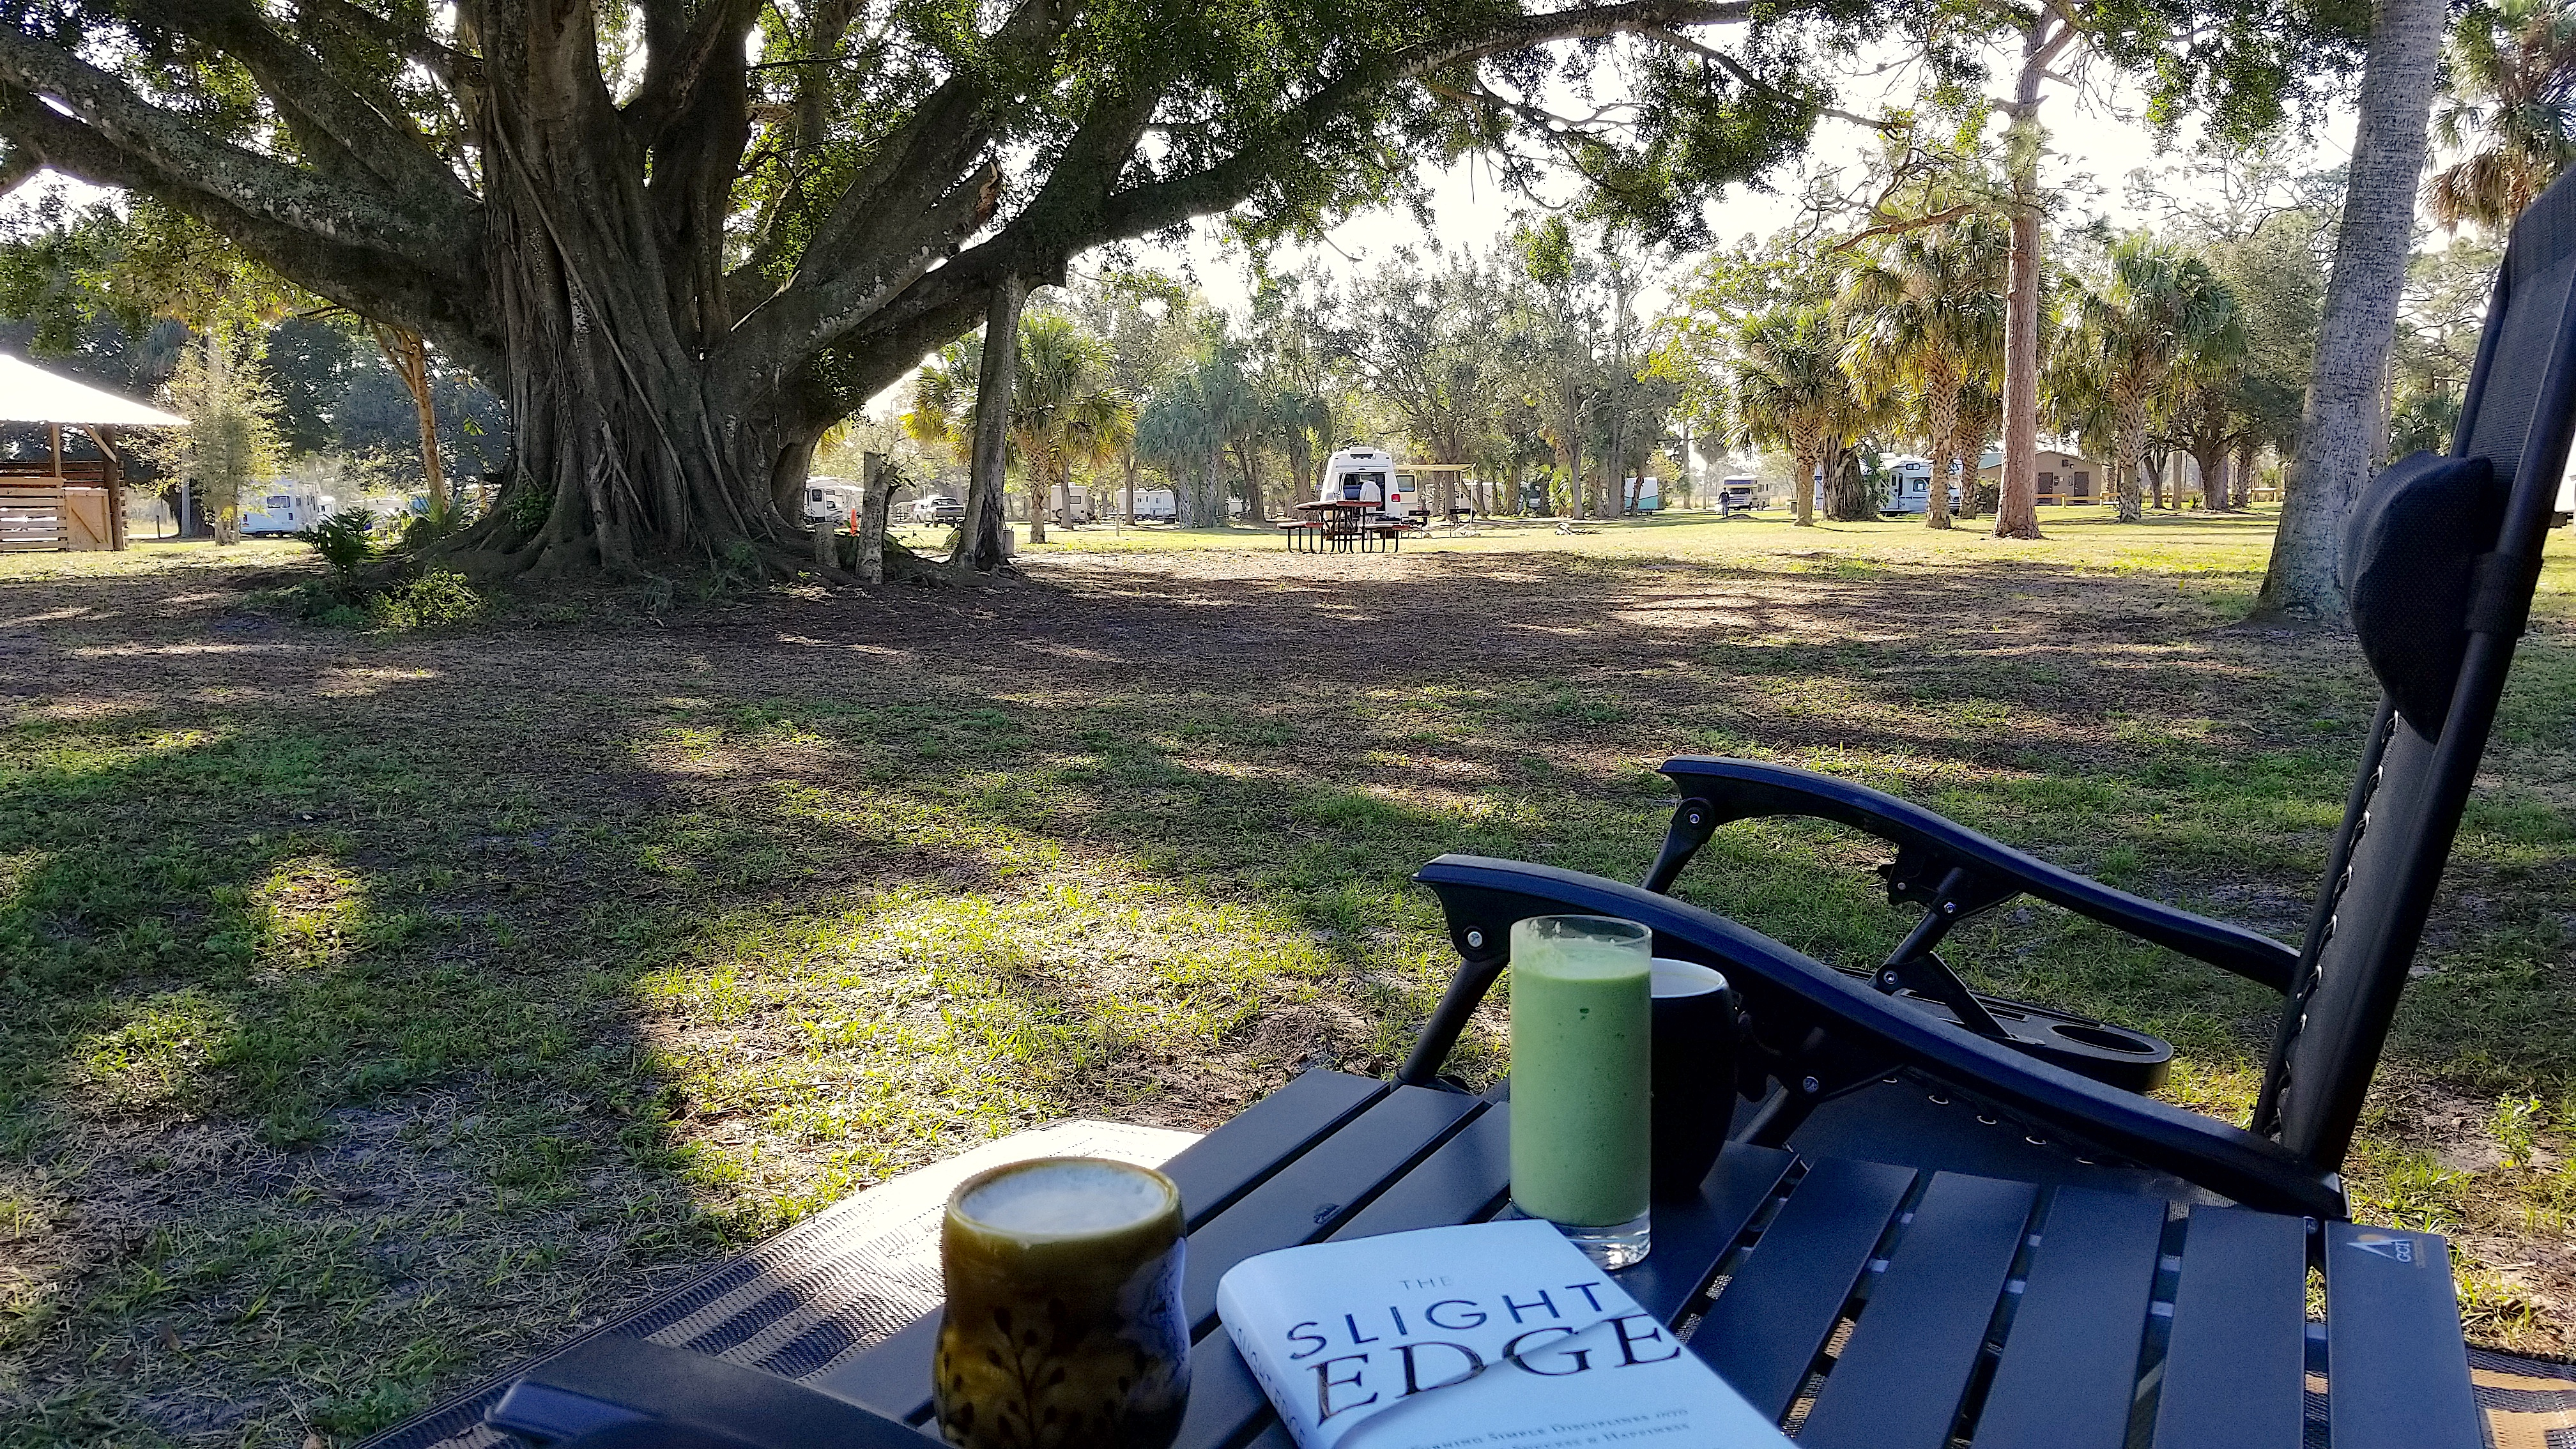 Camping With Smoothie Coffee Book And Patio Chairs Tree